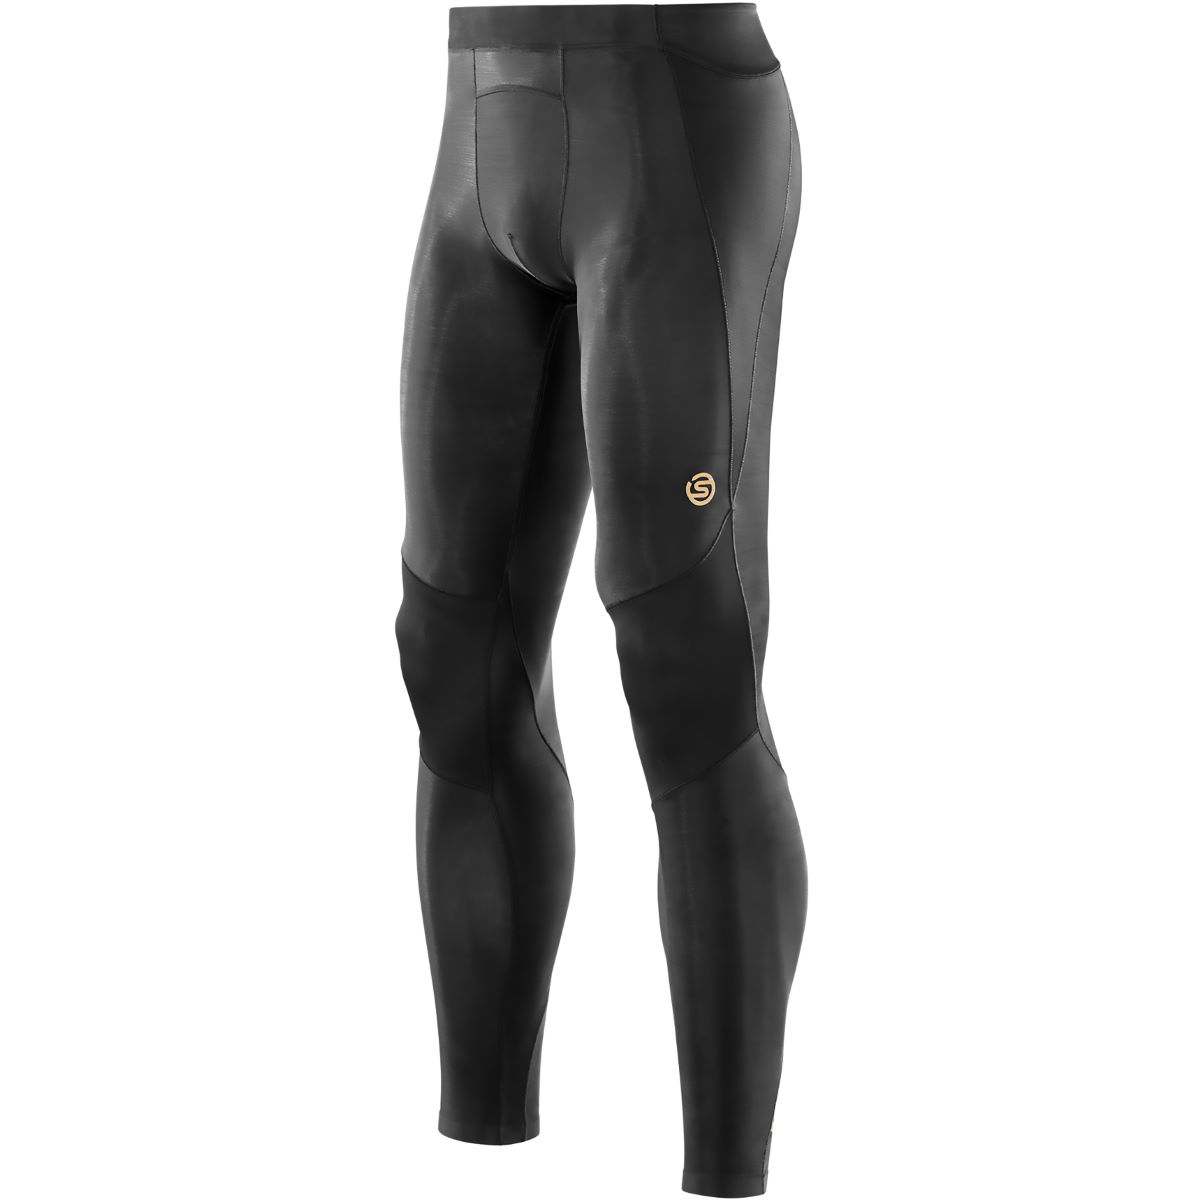 Collant long SKINS A400 - M Noir Sous-vêtements compression